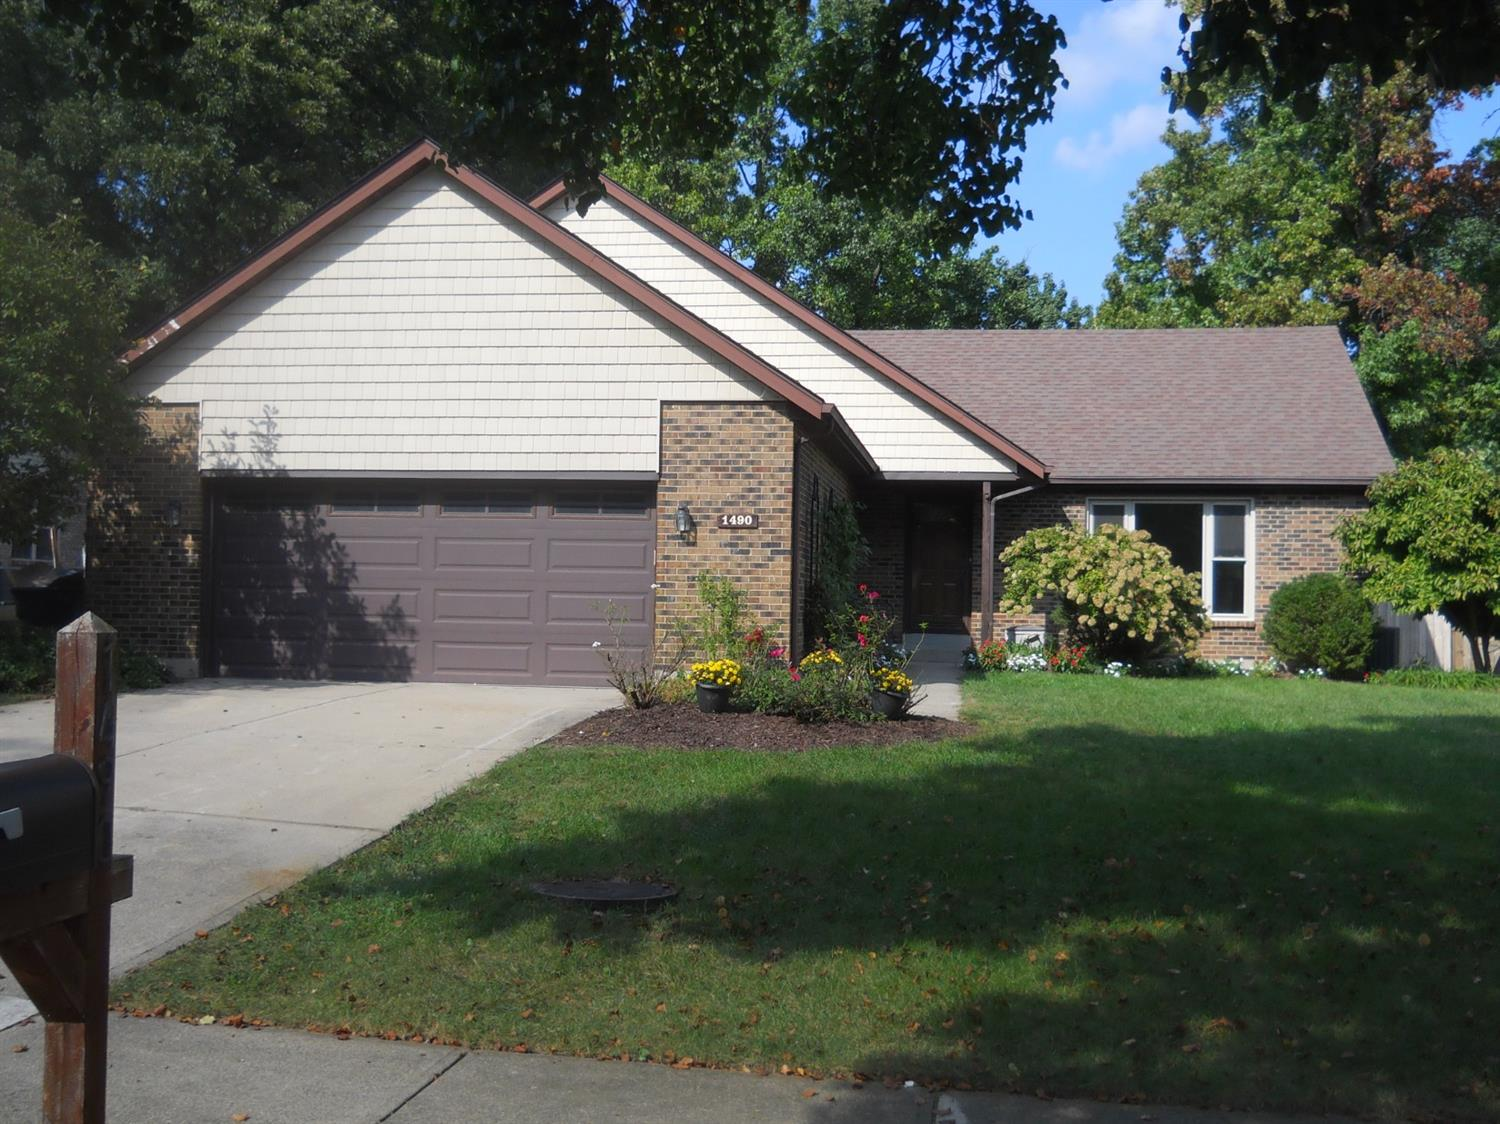 Property for sale at 1490 Becker Drive, Fairfield,  OH 45014